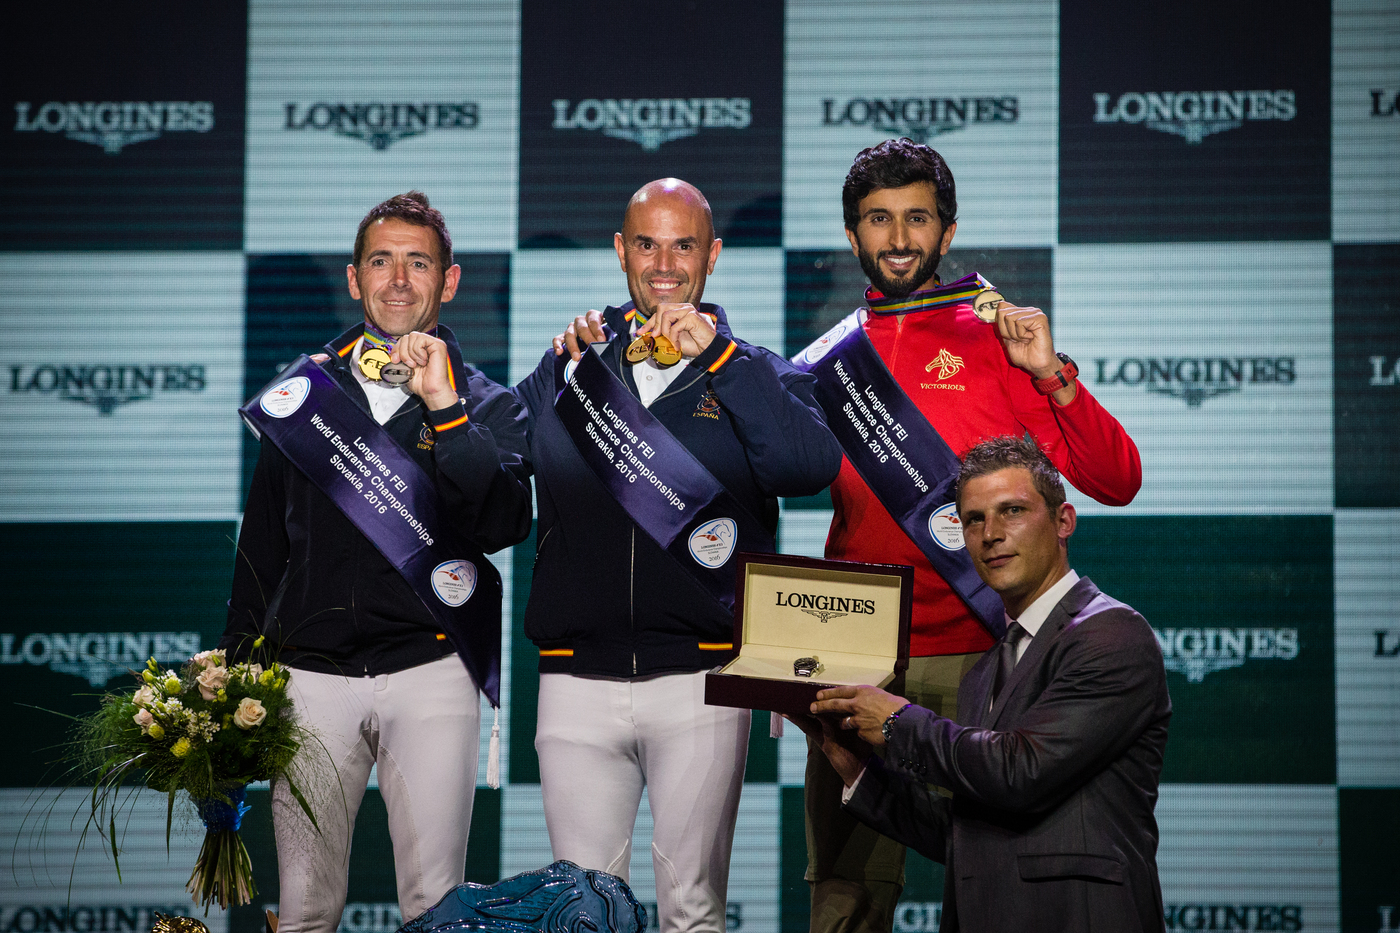 Longines Endurance Event: Jaume Punti Dachs and Twyst Maison Blanche won the 160 km ride at 2016 Longines FEI World Endurance Championships  1